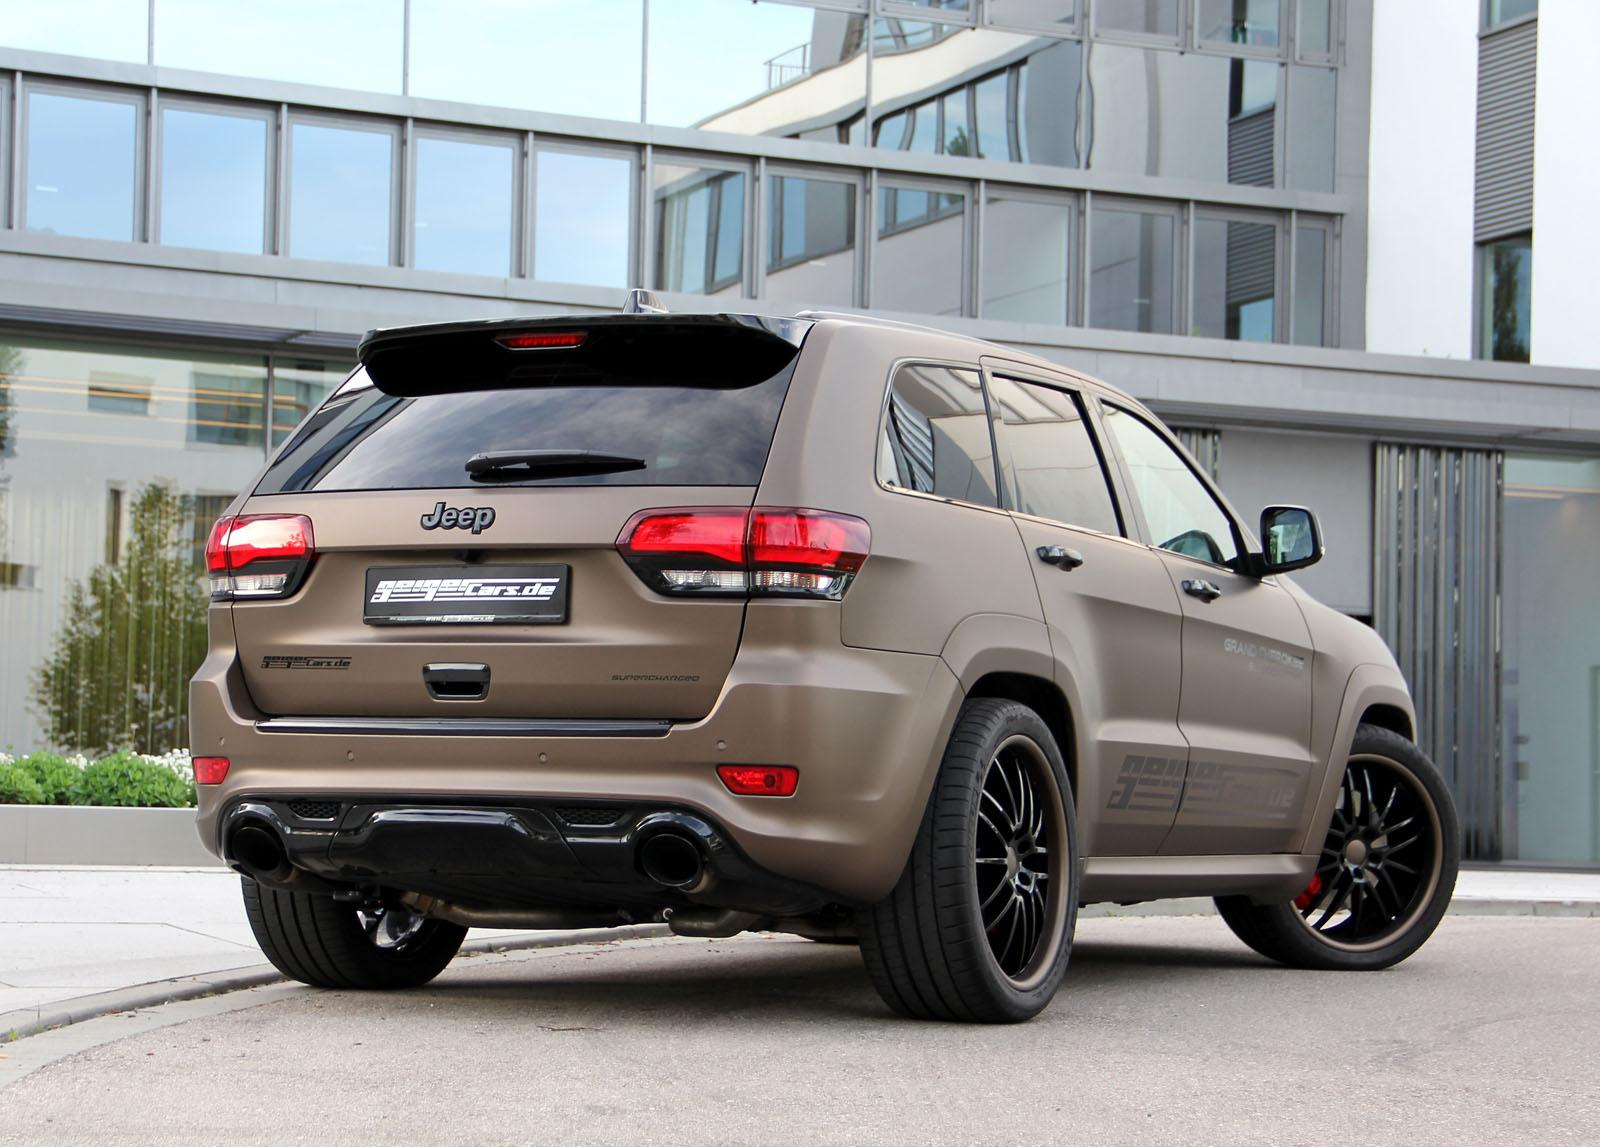 breathtaking 708 hp in a jeep grand cherokee srt8. Black Bedroom Furniture Sets. Home Design Ideas